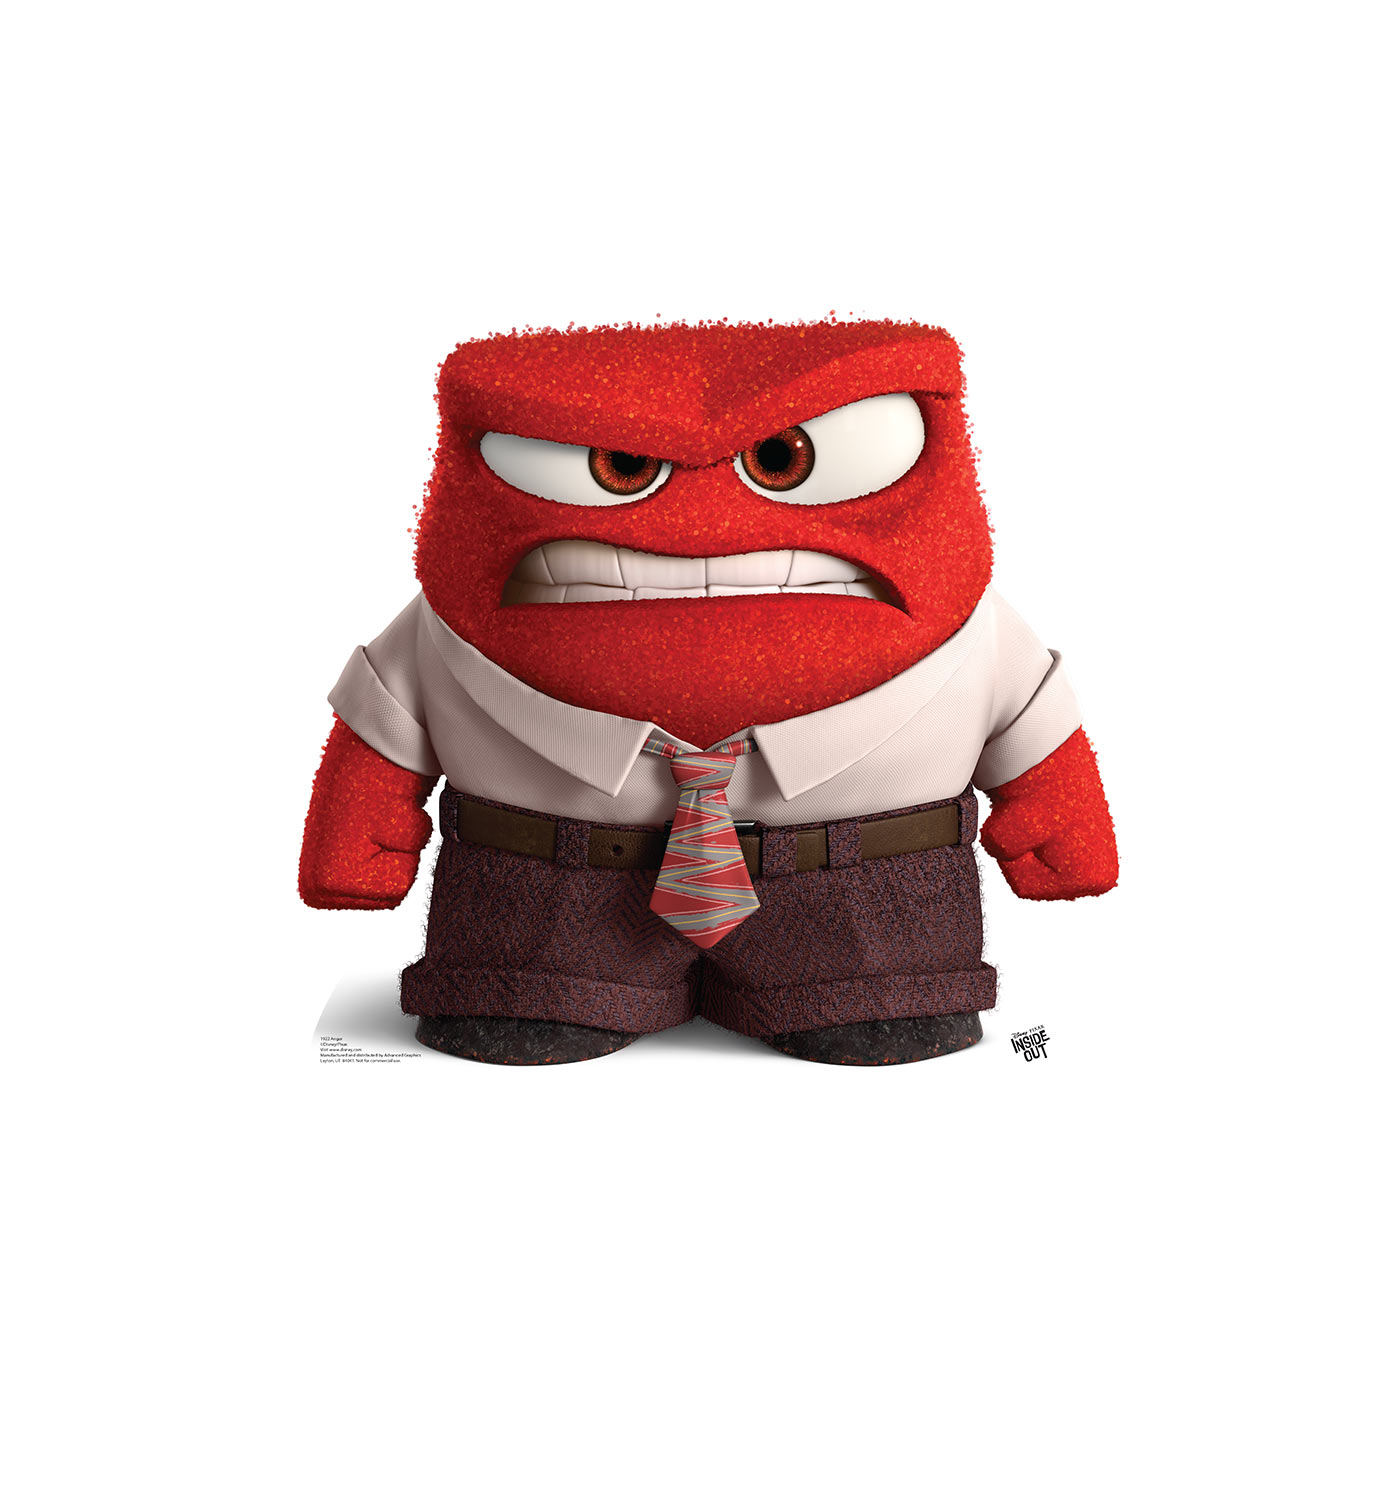 Anger inside out clipart graphic transparent stock Anger – Inside Out | Inside out, Products and Search graphic transparent stock